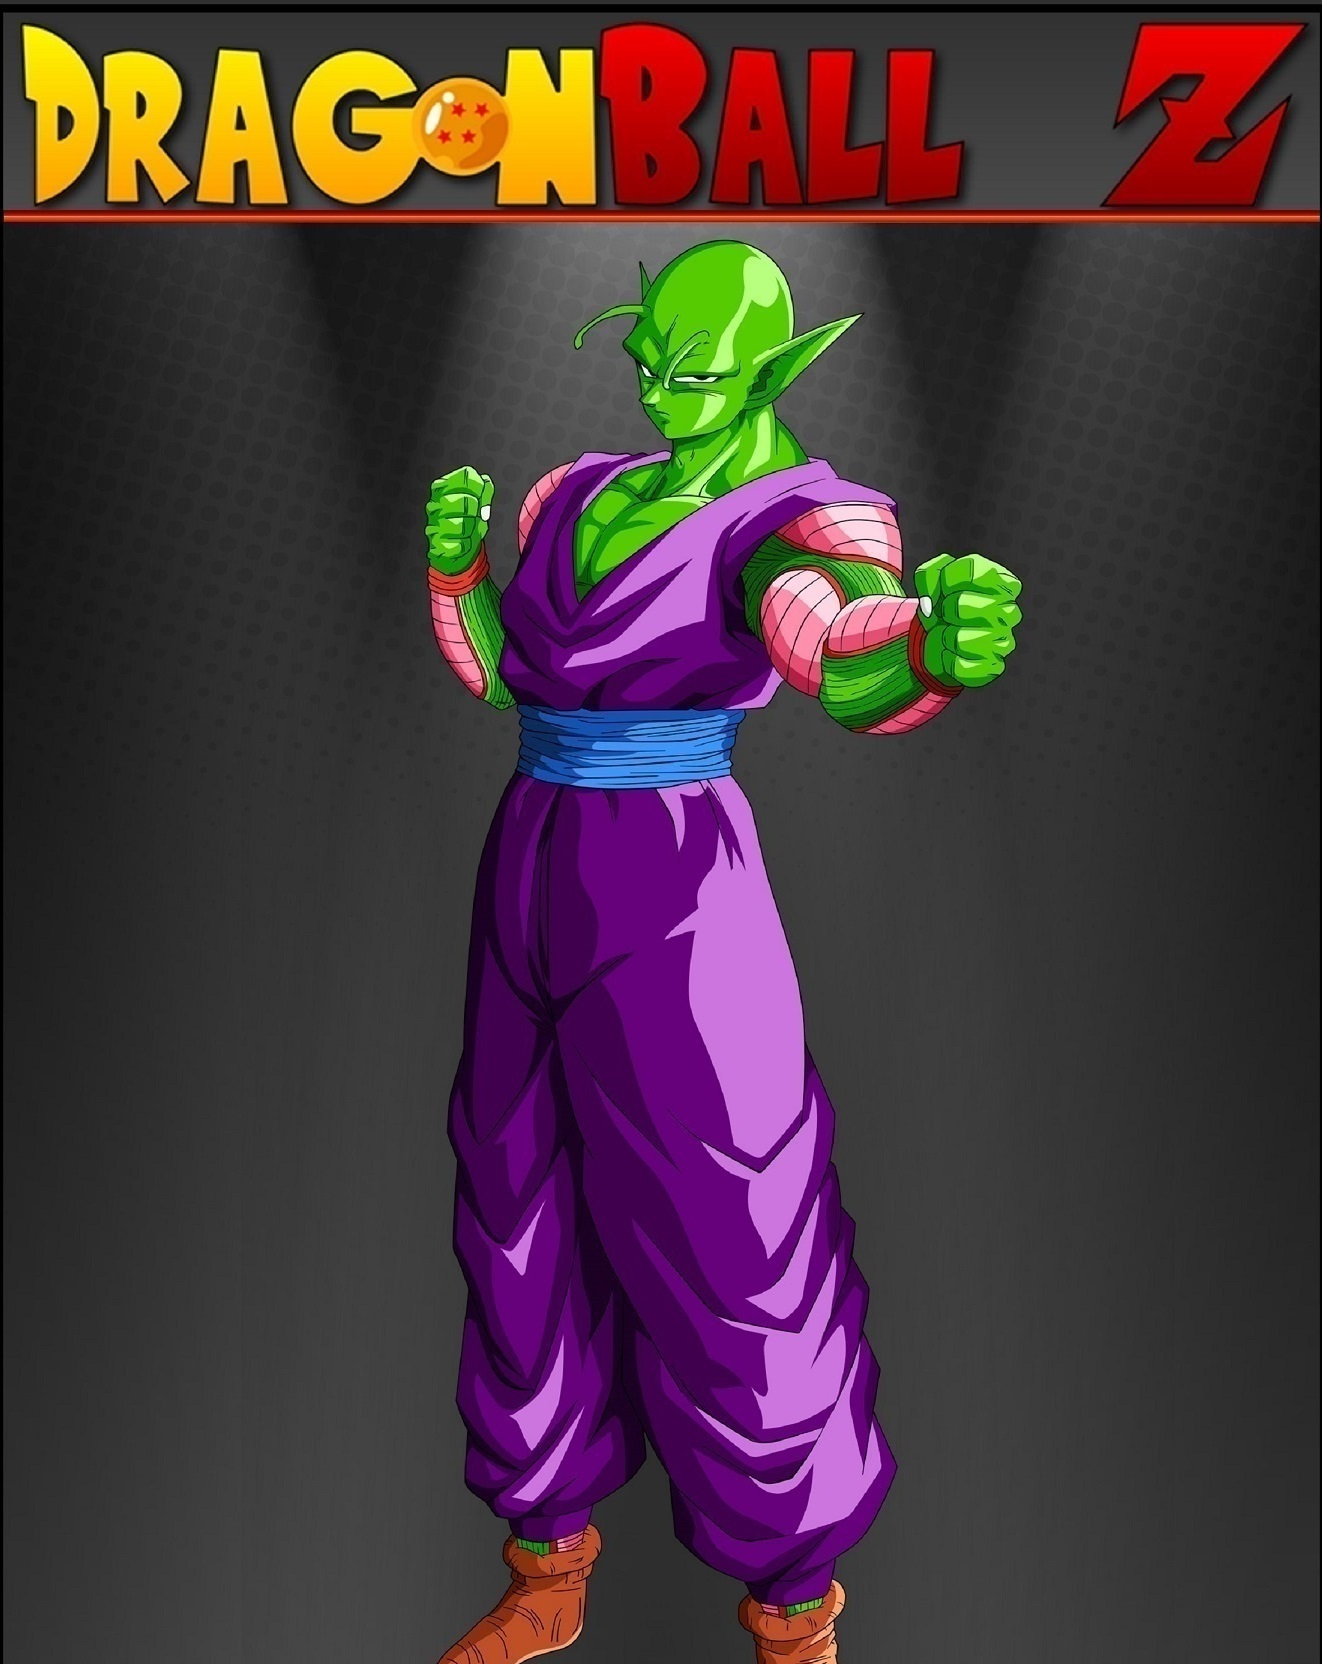 Piccolo Jr Images Dragon Ball Z HD Wallpaper And Background Photos